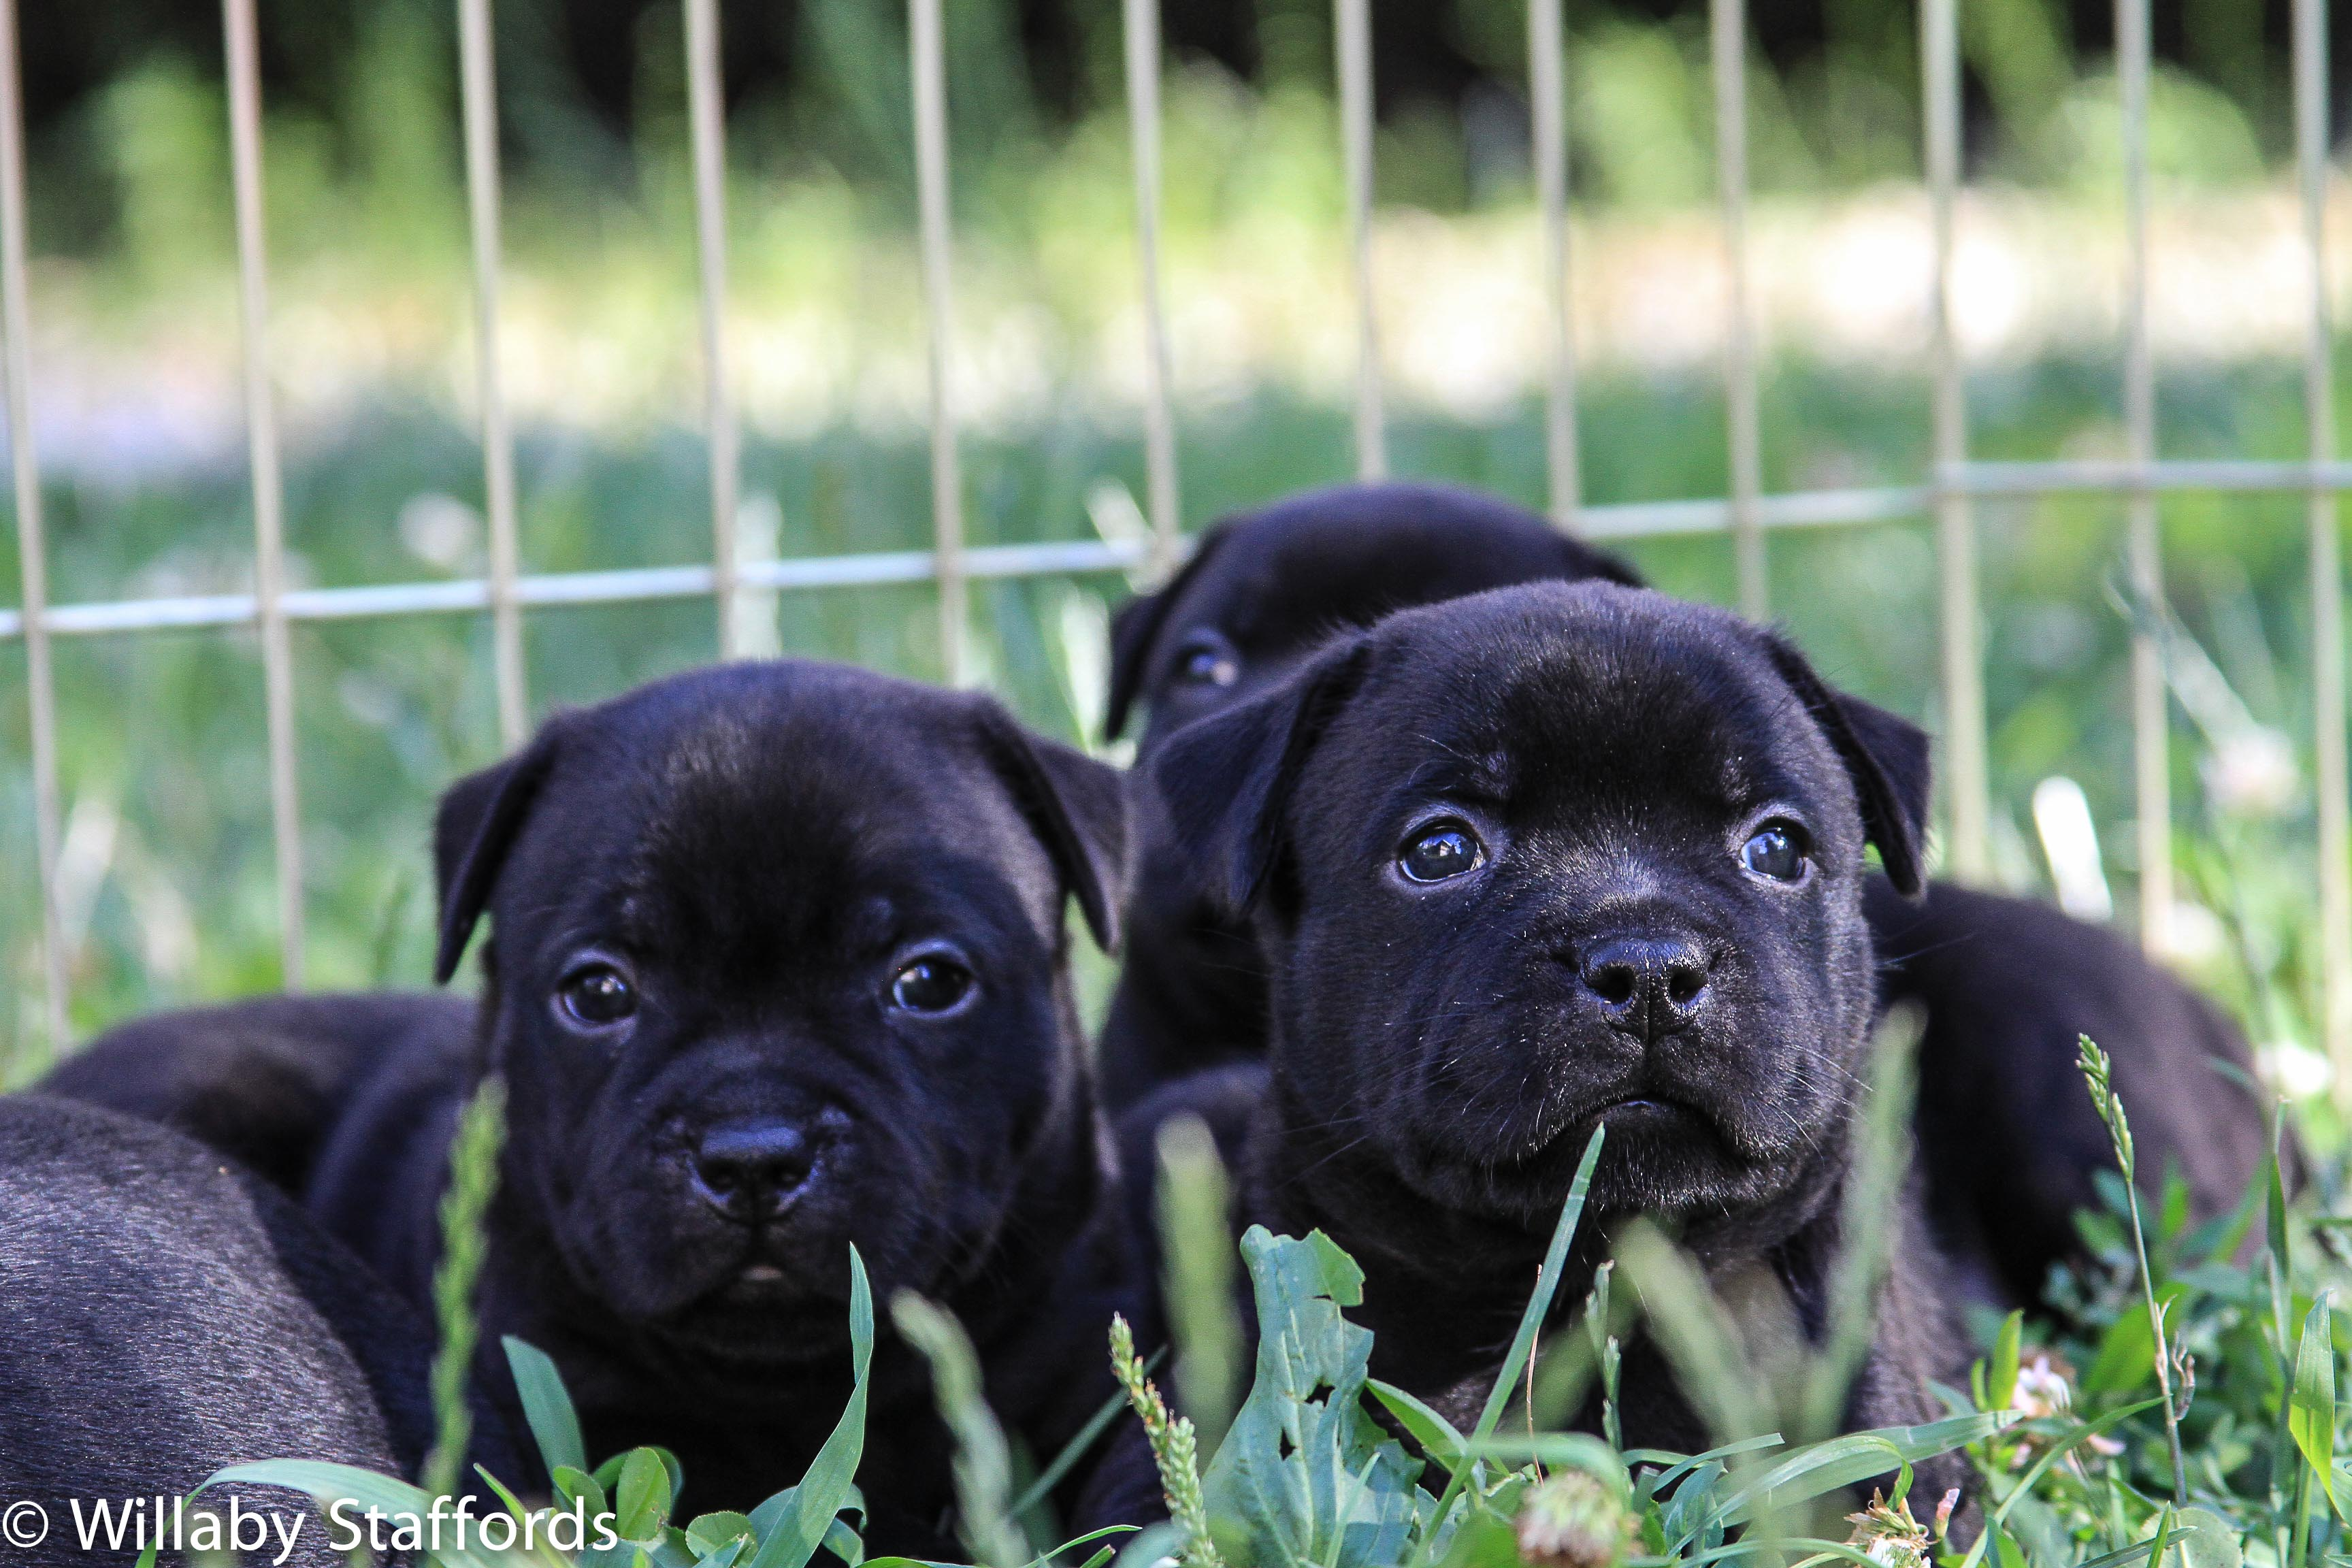 Puppies in Grass